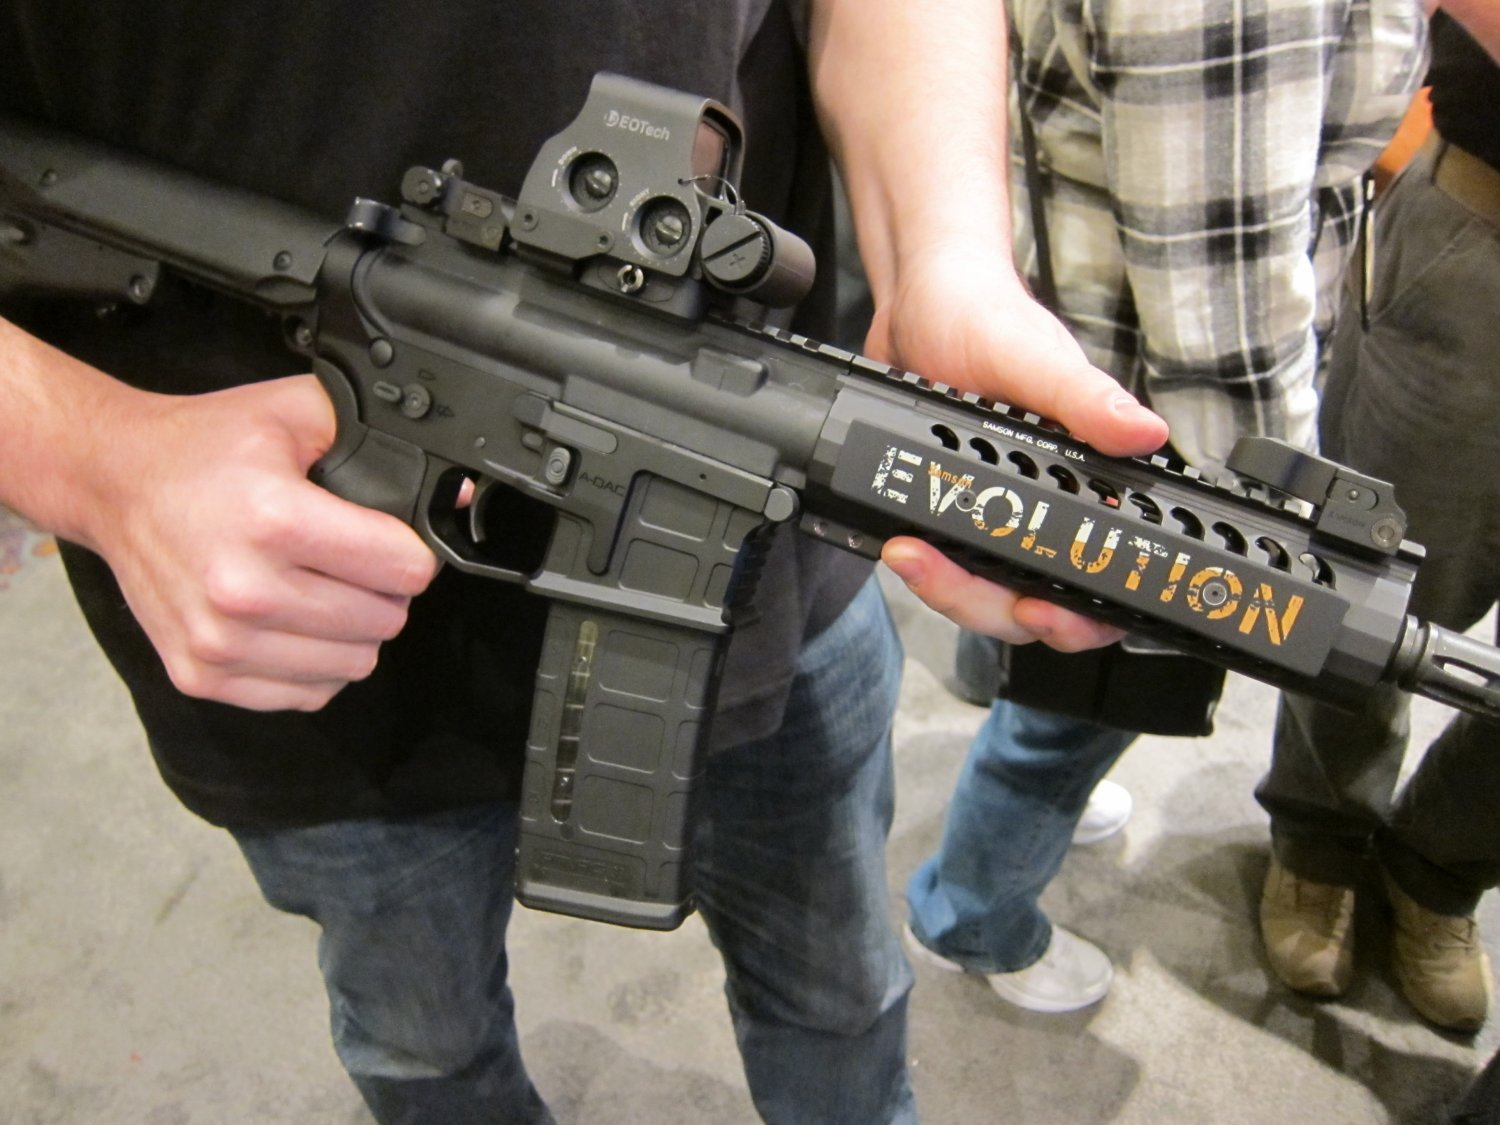 "Samson Evolution Series Rail System SHOT SHOW 2011 13 <!  :en  >Samson Evolution Series Rail System Outfitted Adams Arms 7.5"" PDW Piston AR SBR for Dynamic Close Quarters Battle (CQB) and Tactical Training: DARC Ready!<!  :  >"